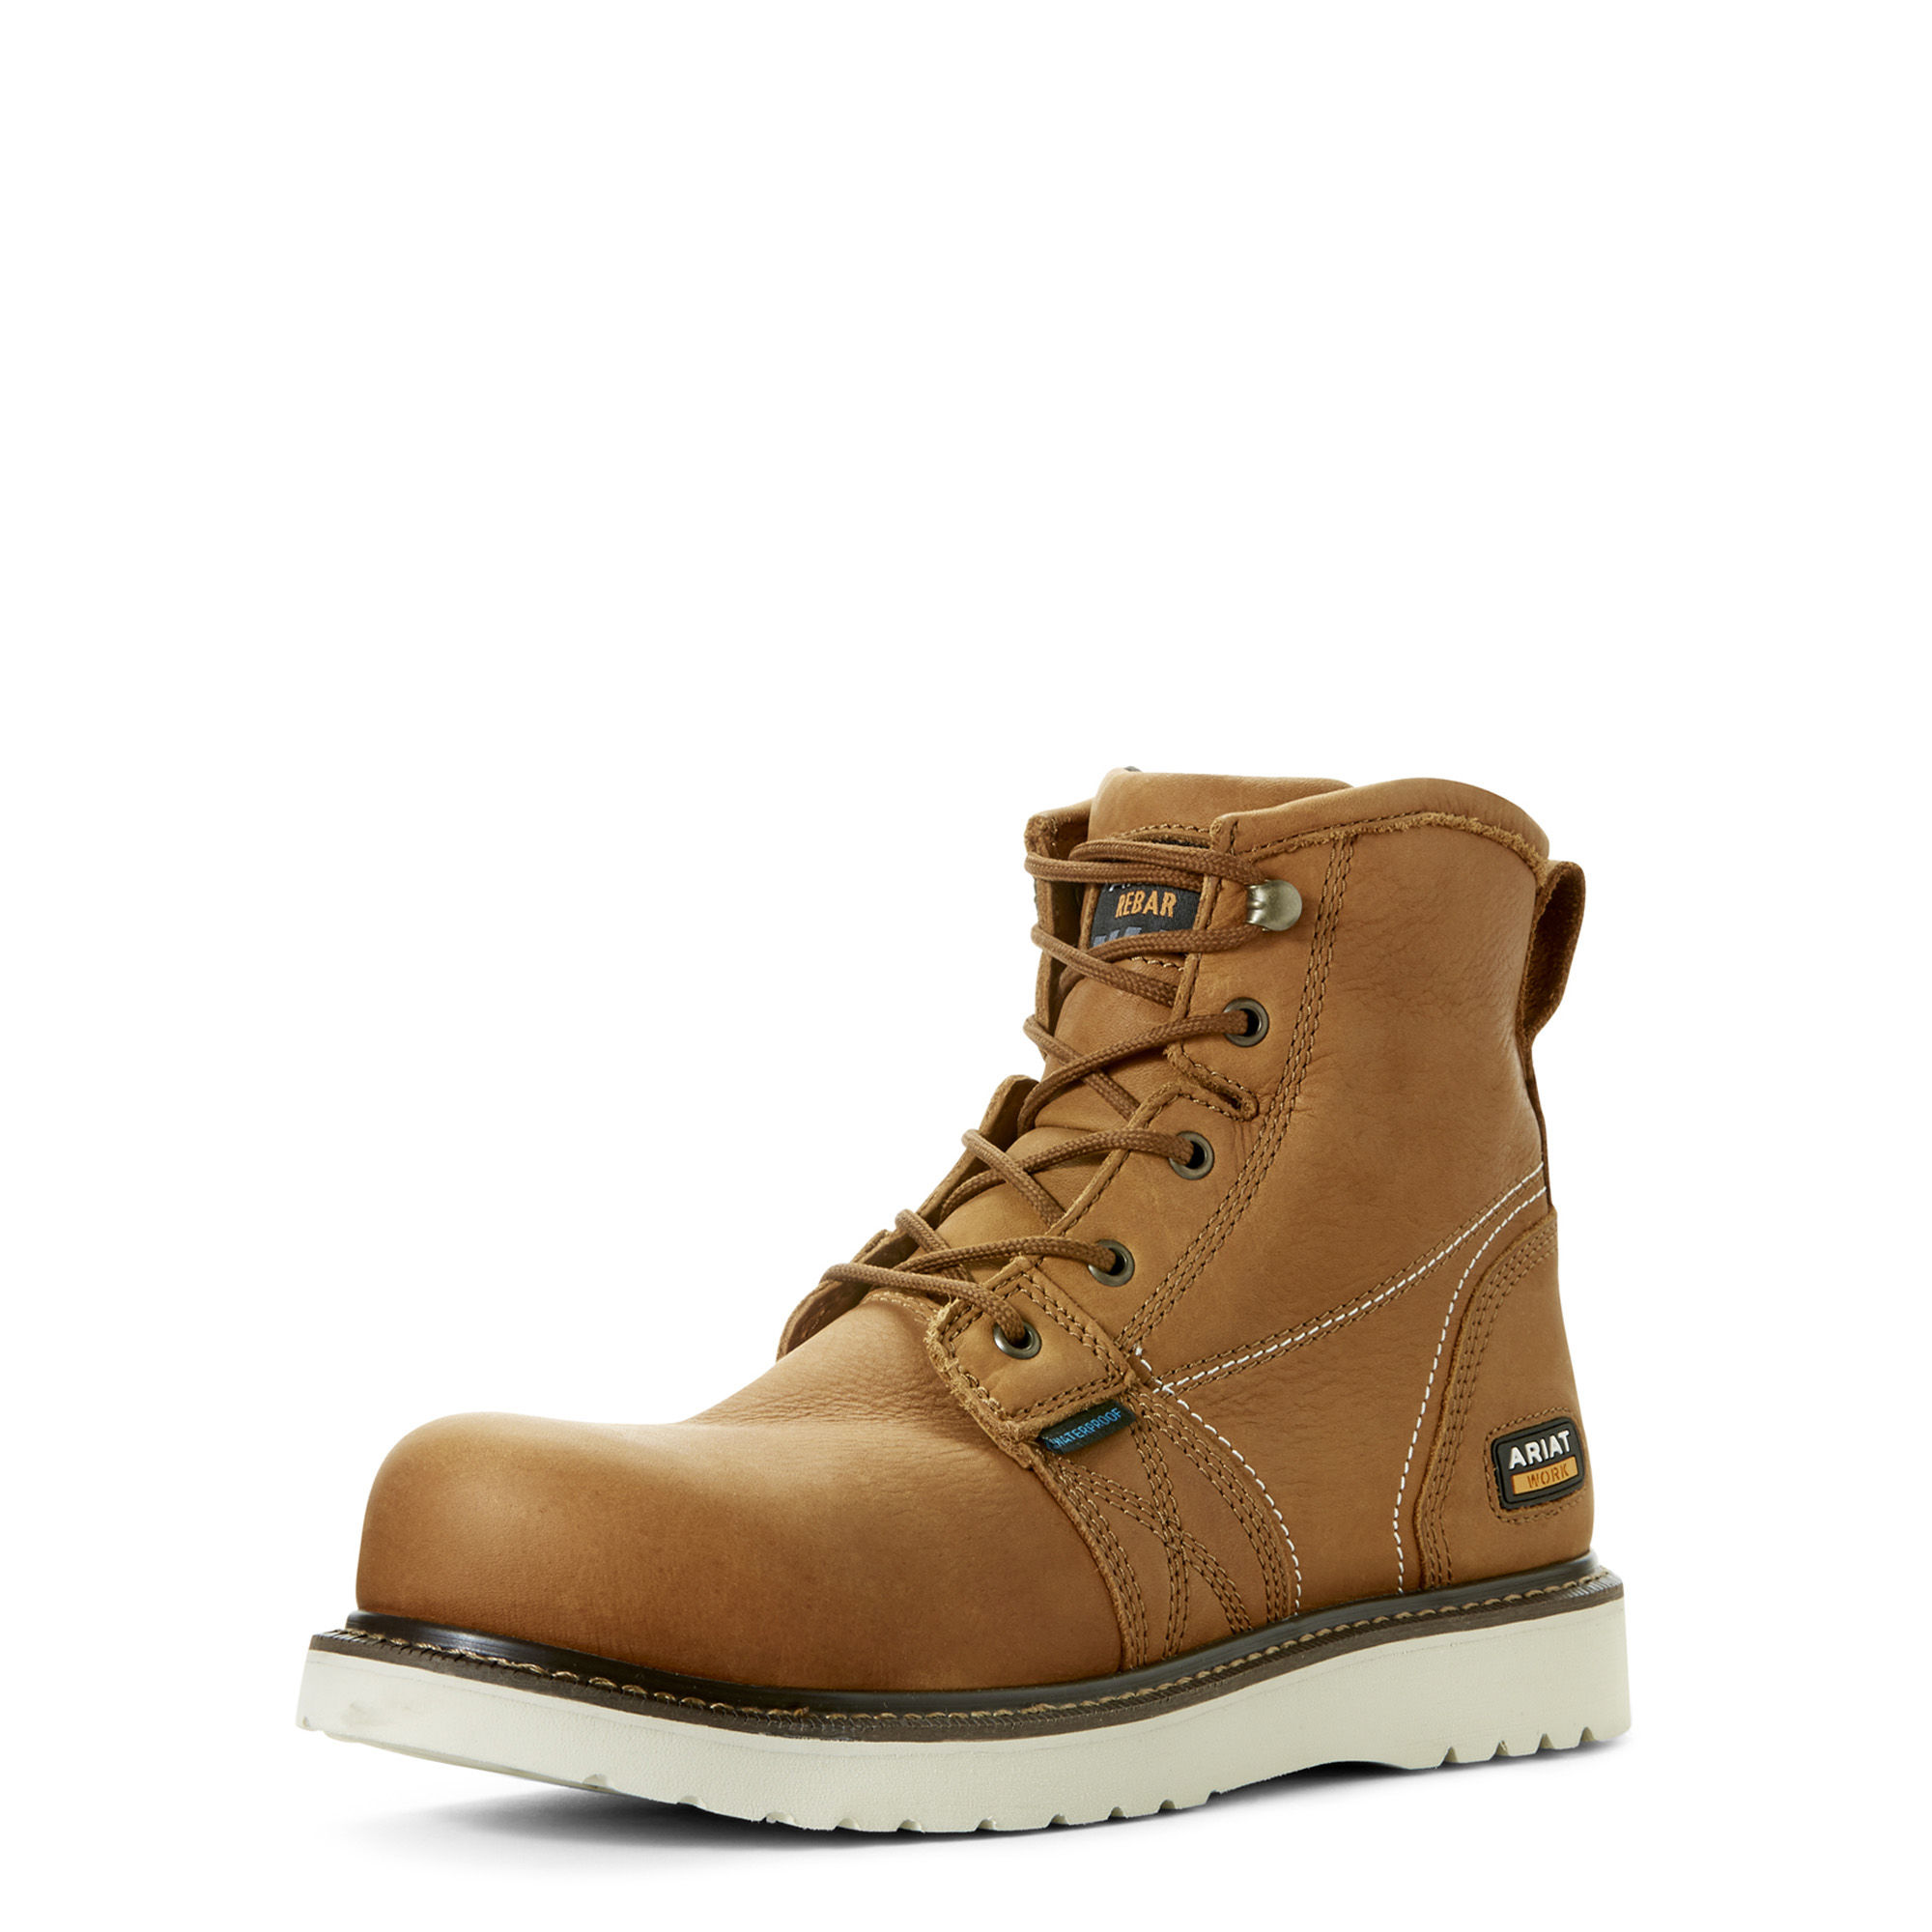 7d9a874ae06 Details about Ariat 10023068 Men Rebar Wedge 6